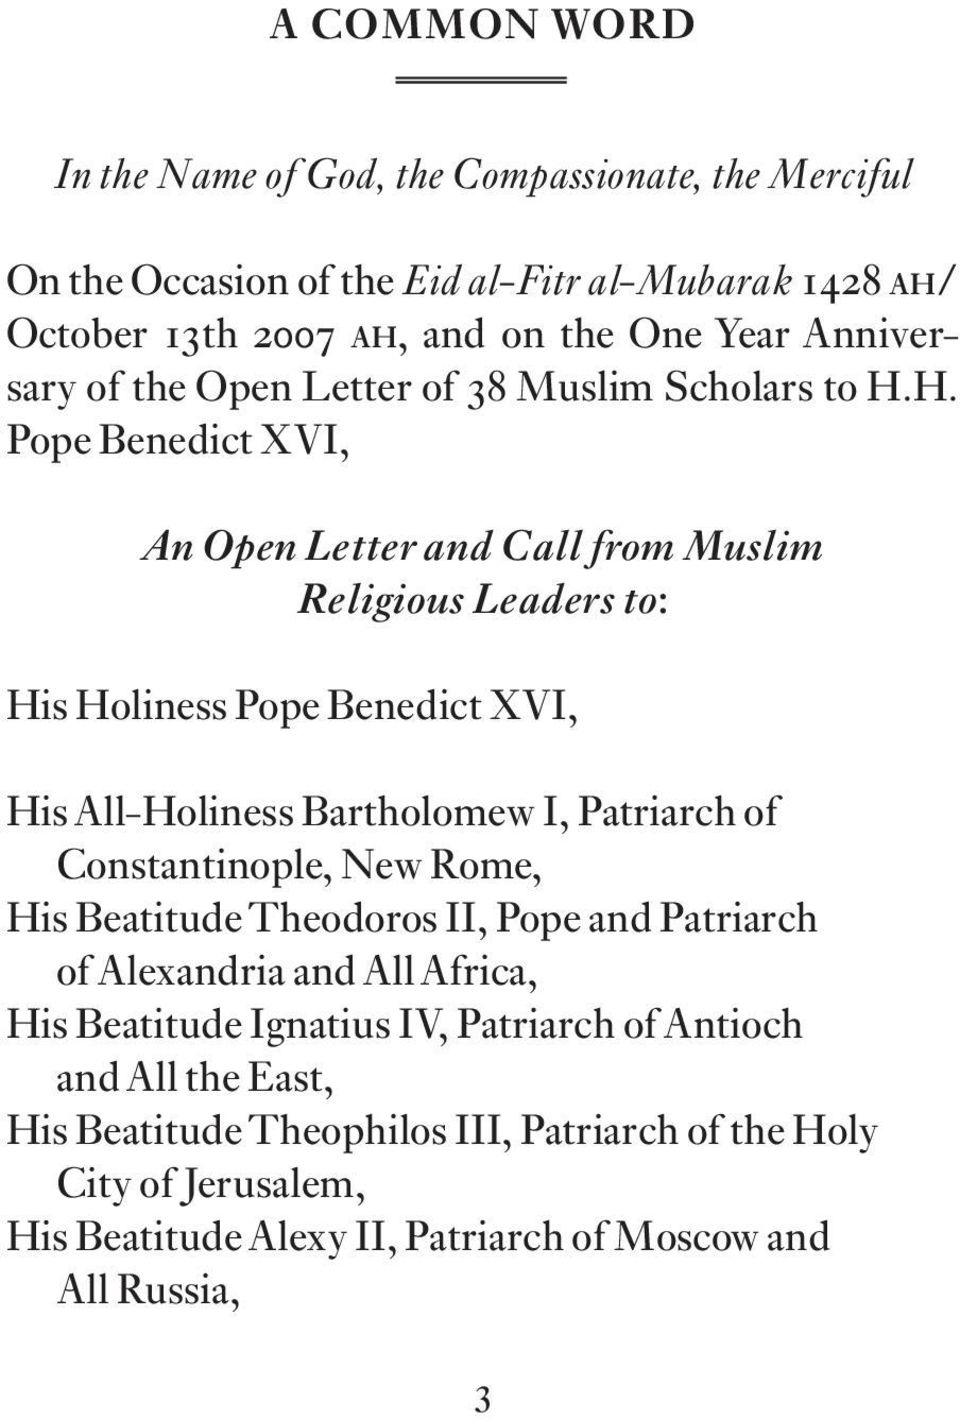 H. Pope Benedict XVI, An Open Letter and Call from Muslim Religious Leaders to: His Holiness Pope Benedict XVI, His All-Holiness Bartholomew I, Patriarch of